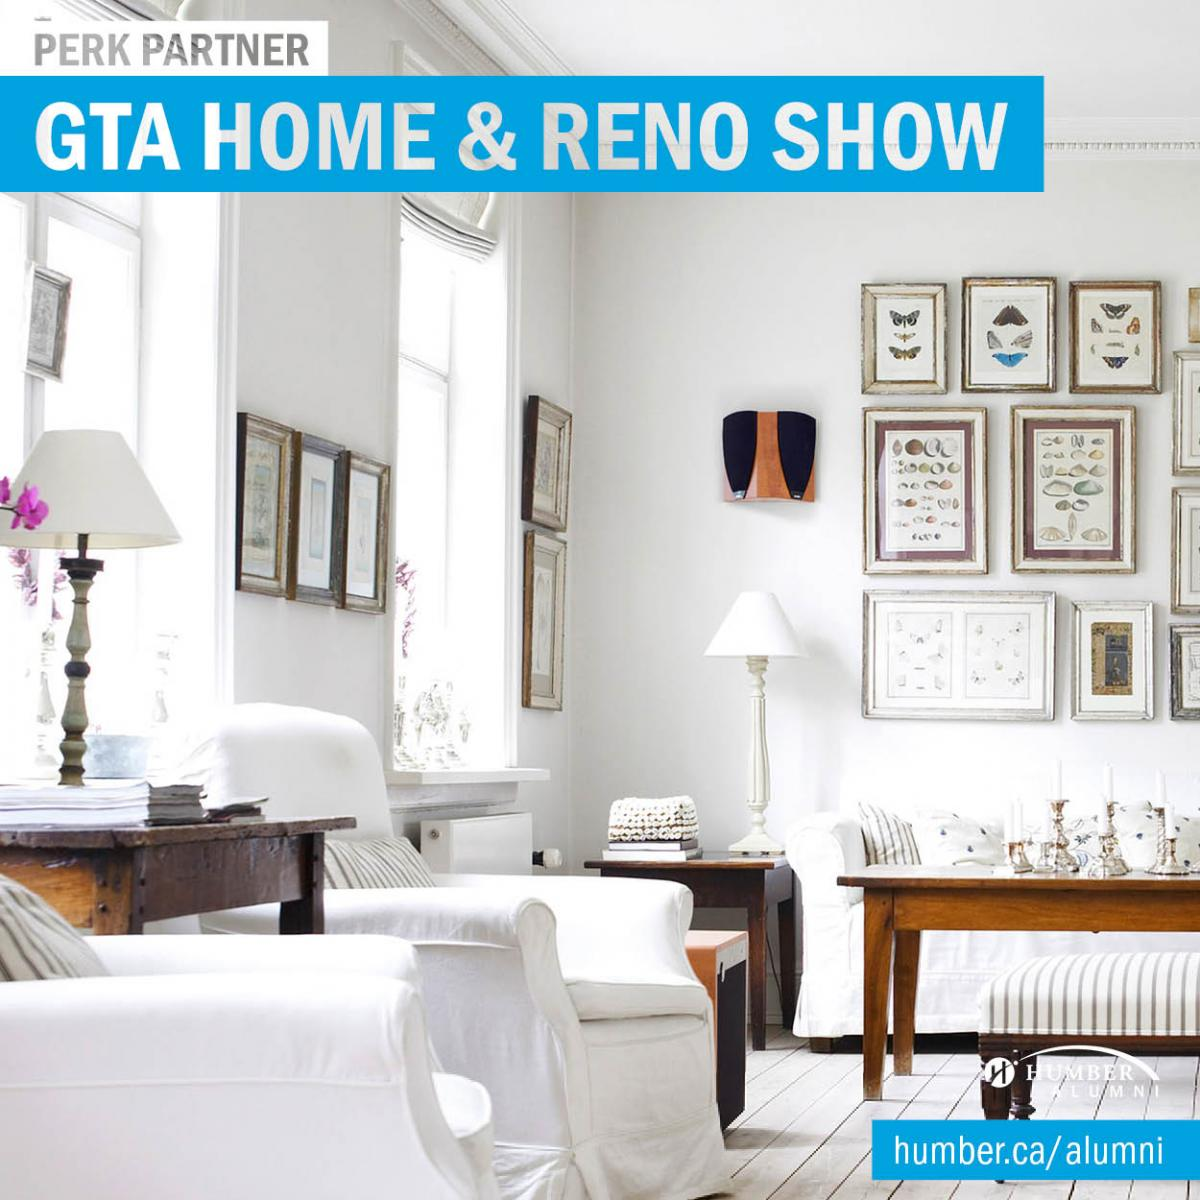 Save on Tickets to the GTA Home & Reno Show | Humber Communiqué